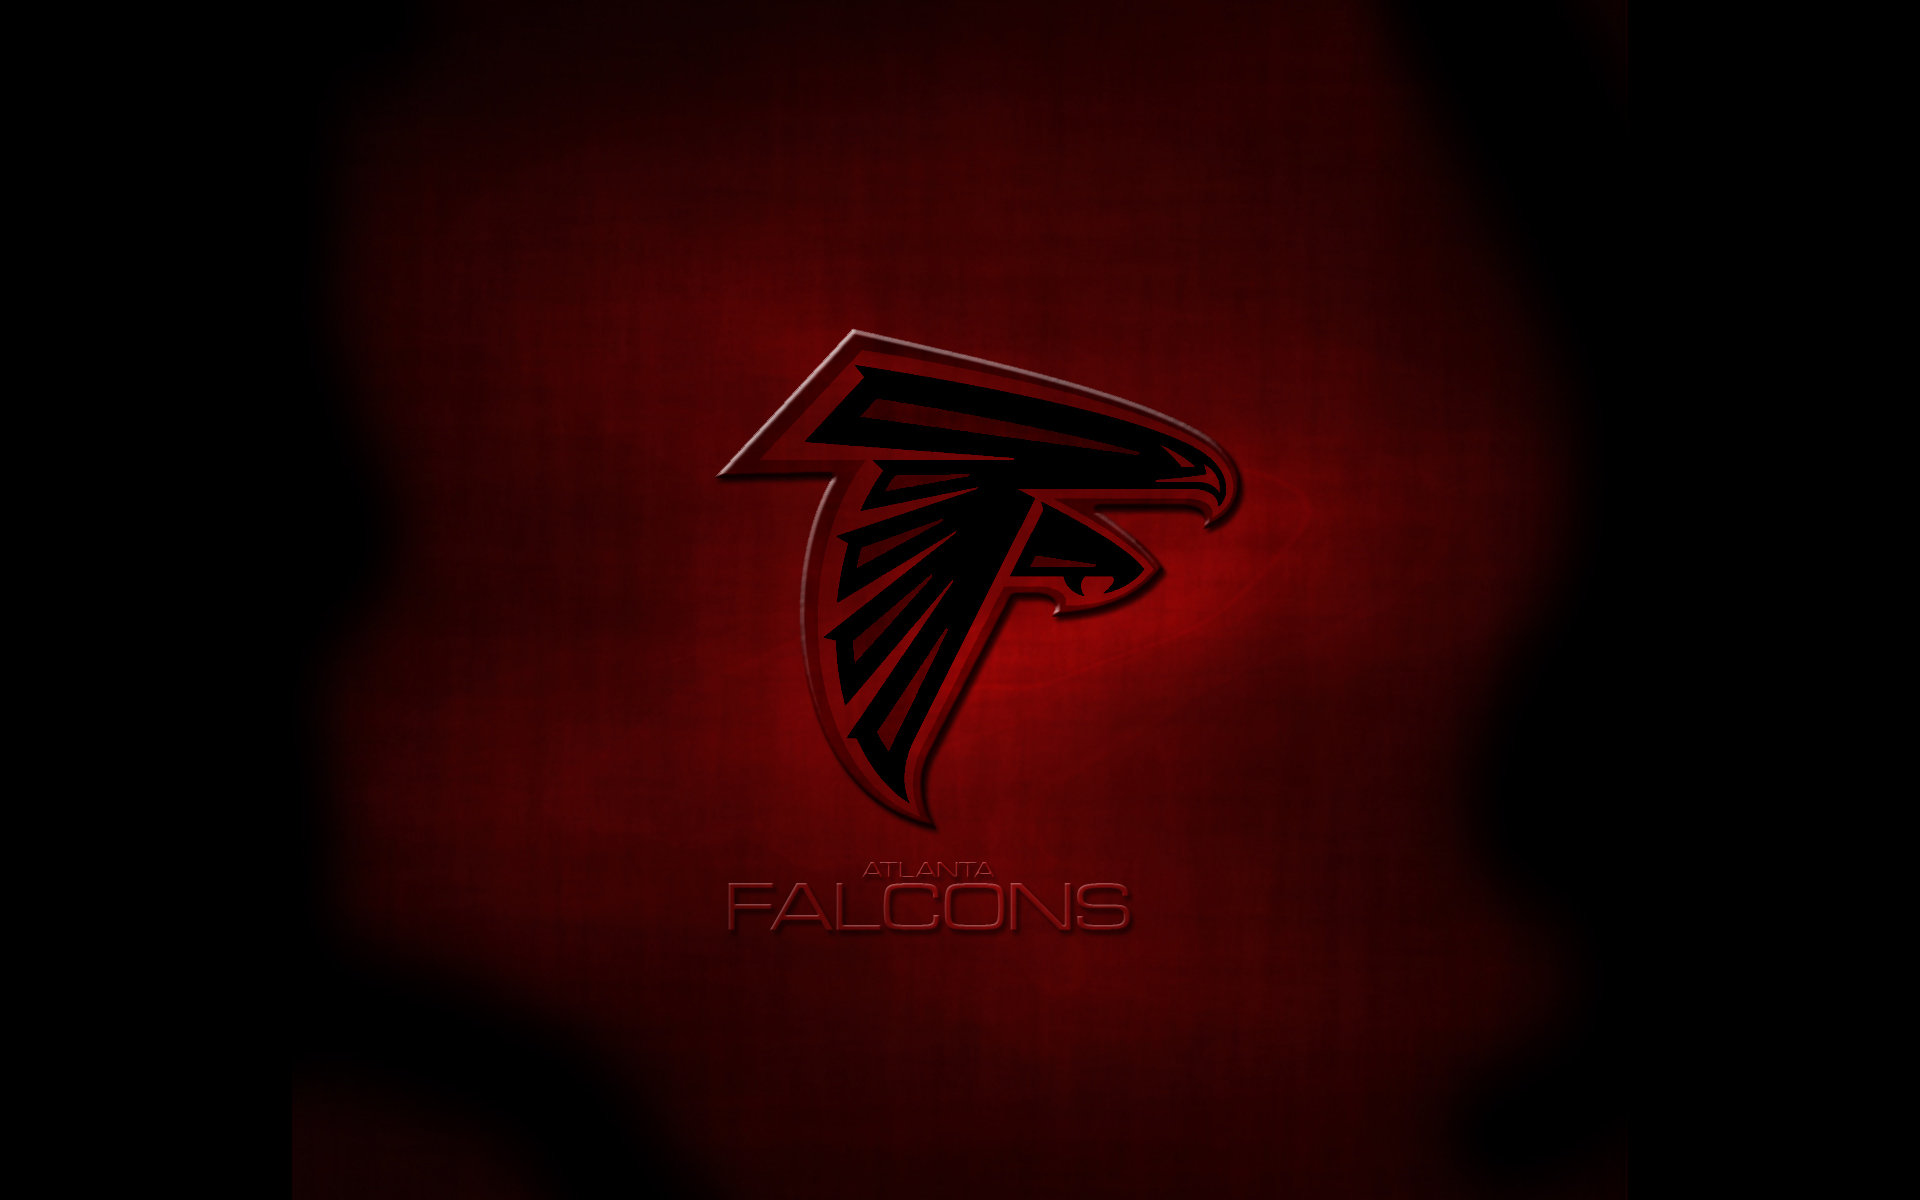 Hd Atlanta Falcons Backgrounds Desktop Background: 8 HD Atlanta Falcons Wallpapers